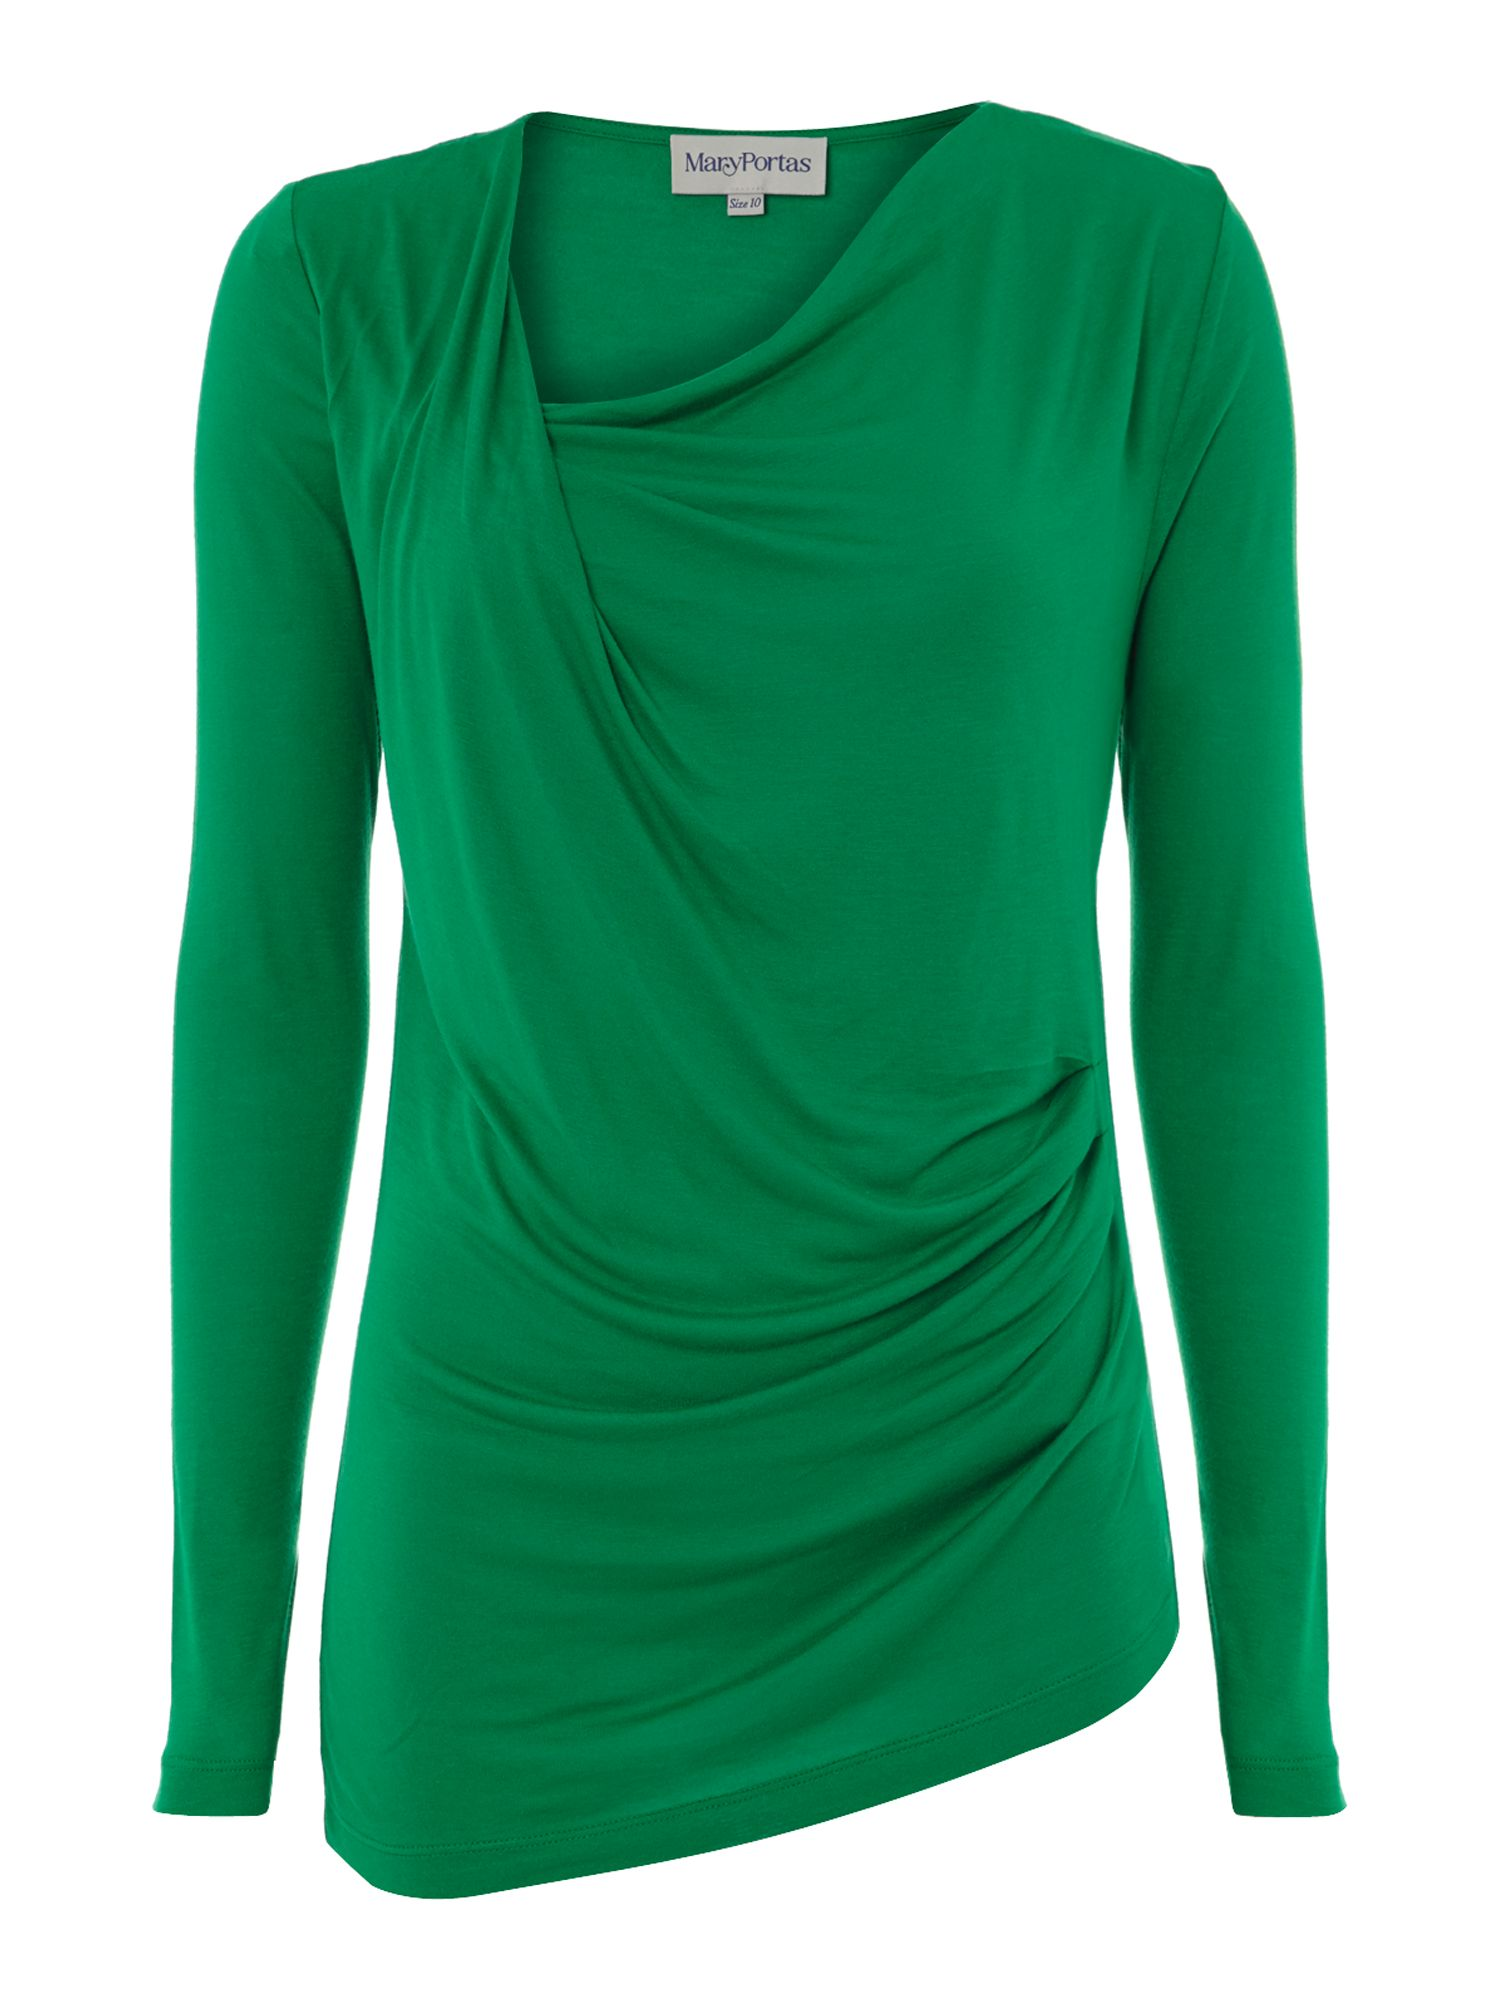 Twist detail long sleeve top